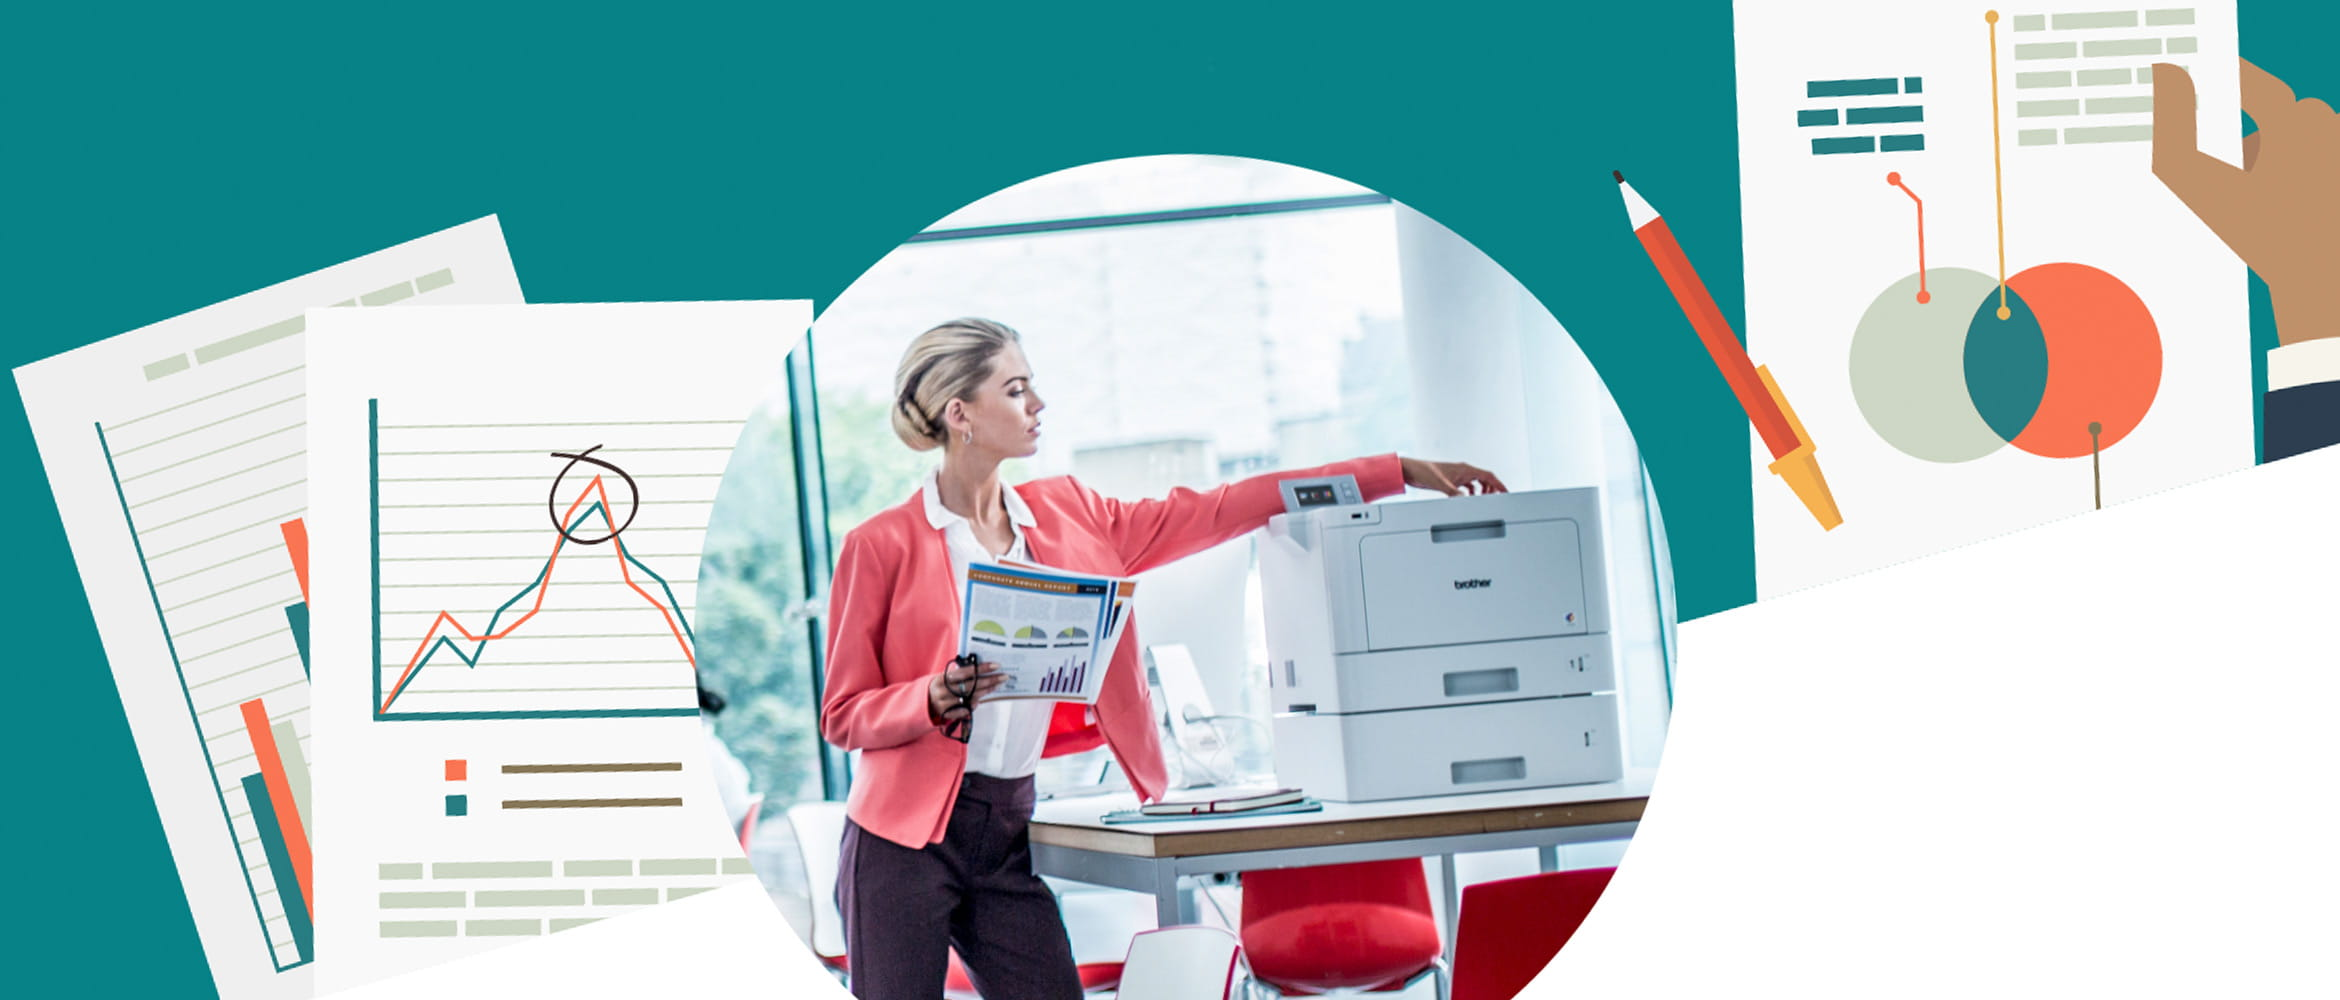 Illustration of printed documents and a photograph of a lady taking paper from a printer